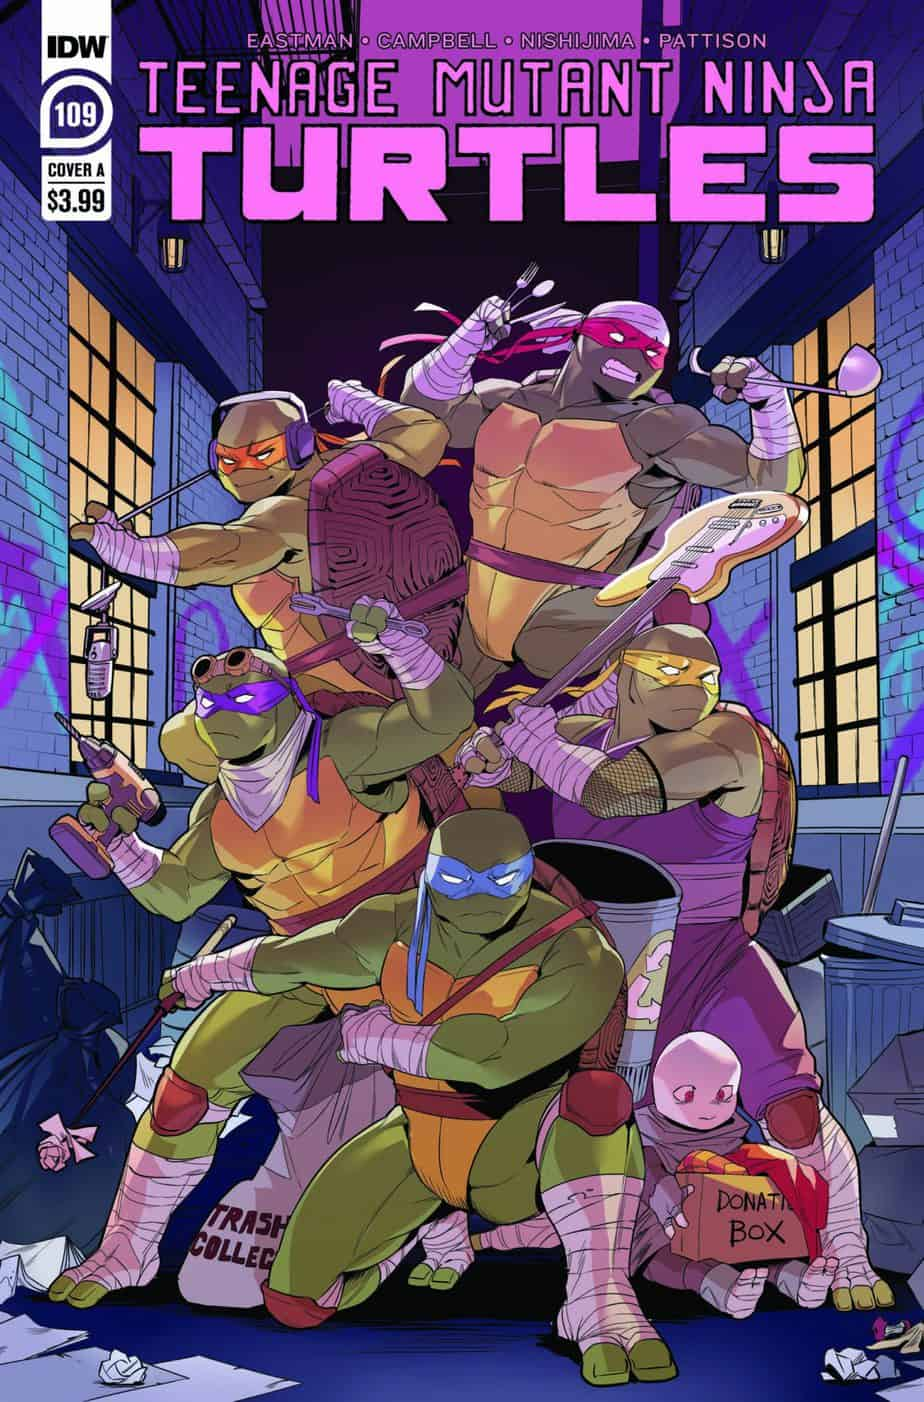 Teenage Mutant Ninja Turtles #109 - Cover A